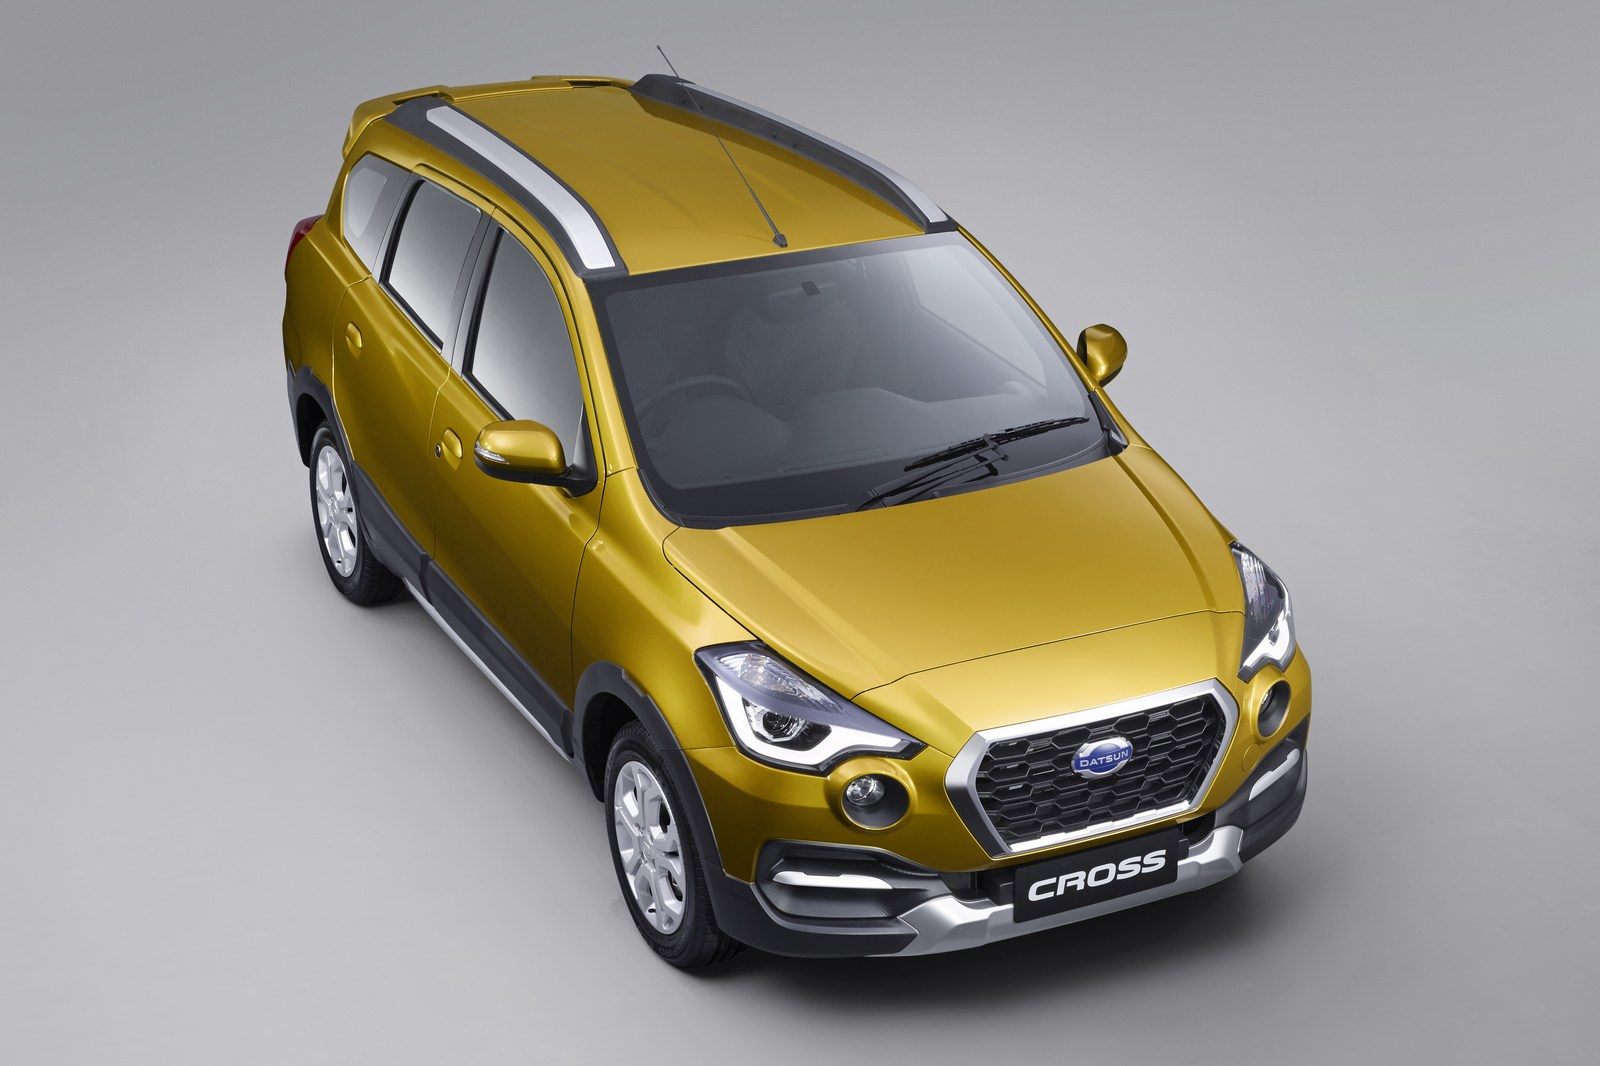 With distinctive looks and advanced technical and safety features, the new Datsun CROSS marks the start of the next phase of Datsun's journey in the country. Developed for Indonesia, this modern car expands the choice for Datsun customers while setting new standards in the segment and creating a new flagship of the brand in the market.